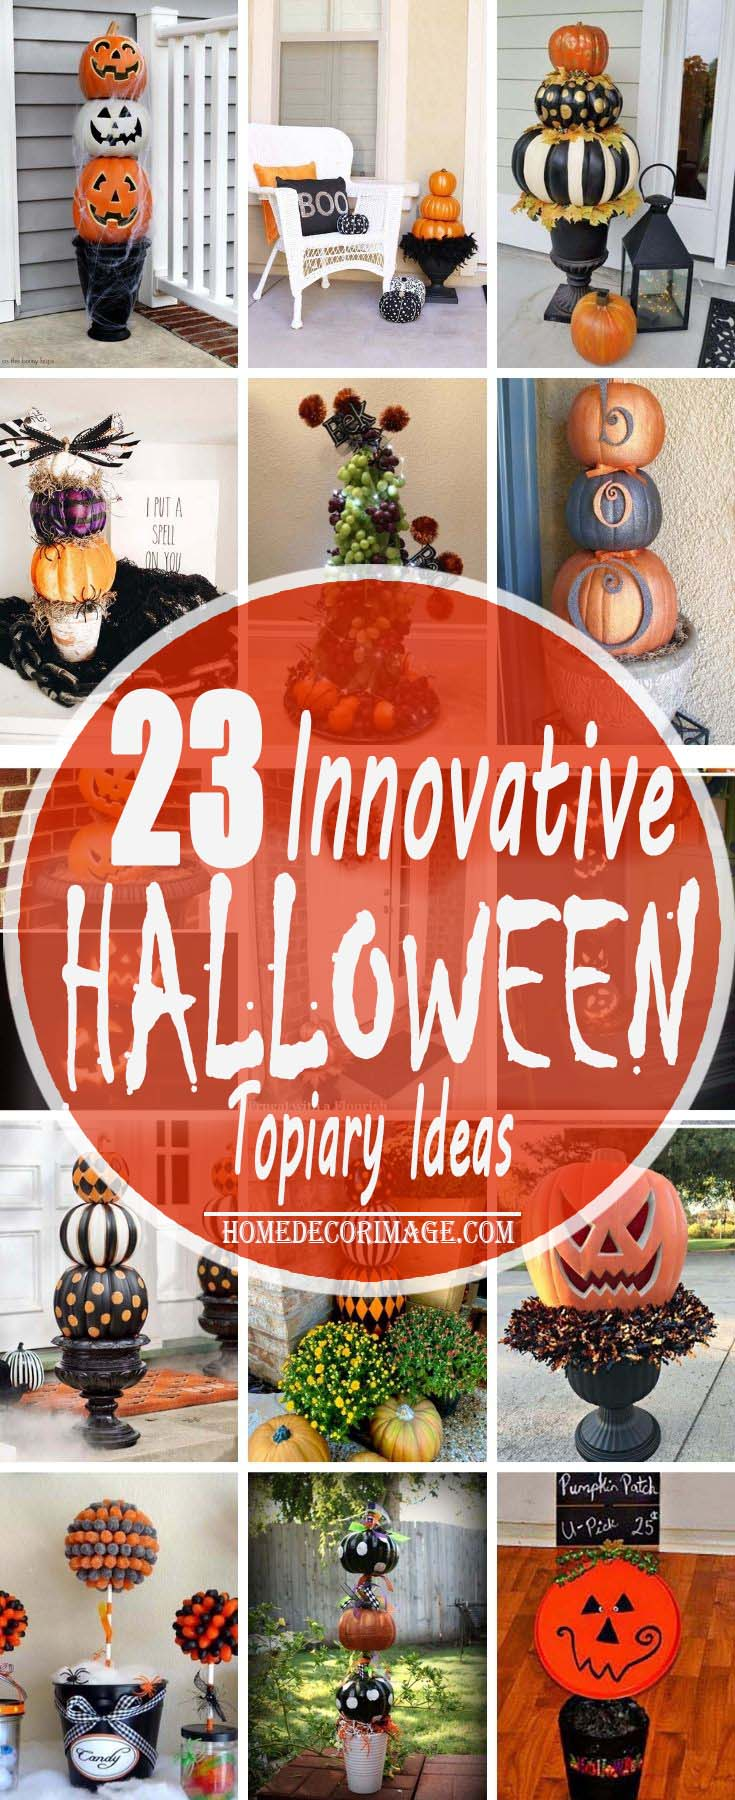 23 Innovative Halloween Topiary Ideas to Get Into the Spooky Mood #topiary #halloween #homedecorimage